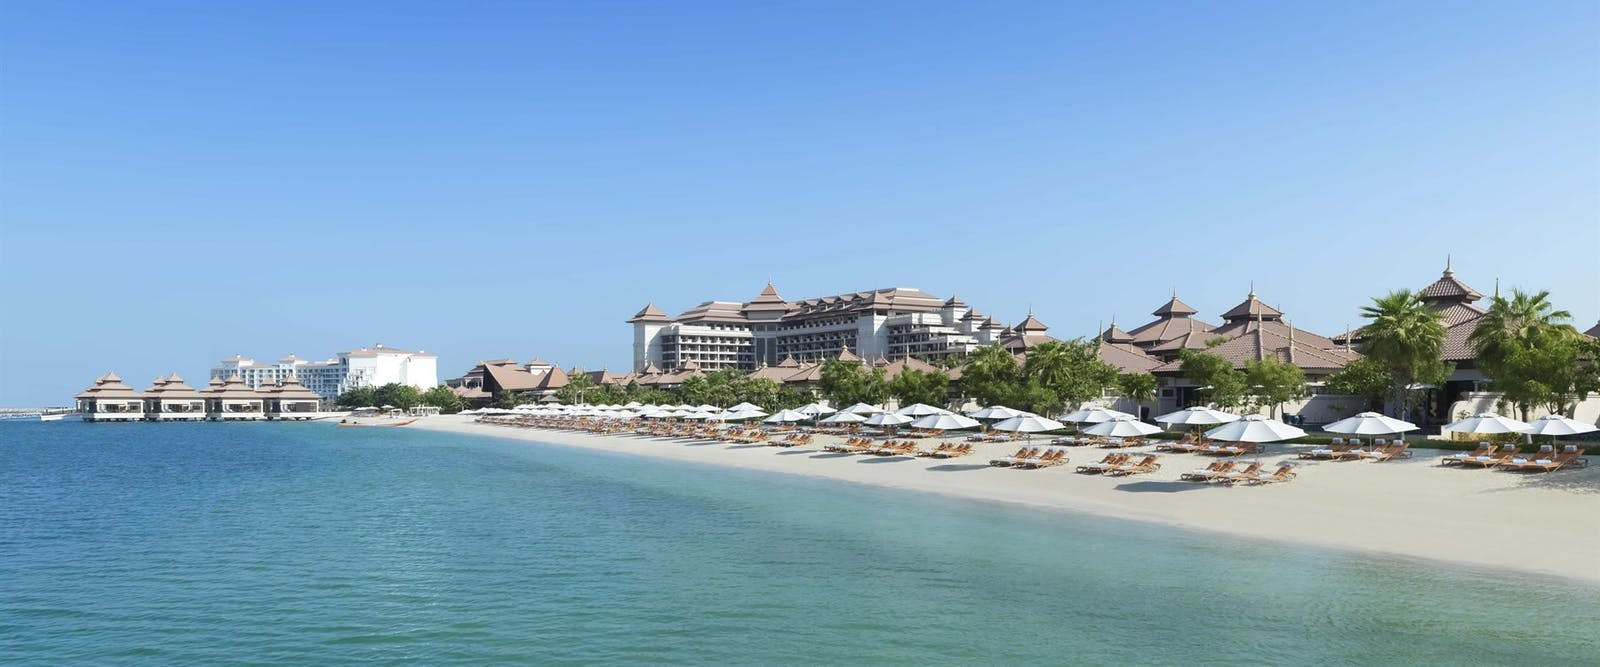 Beach at Anantara Dubai The Palm Resort & Spa